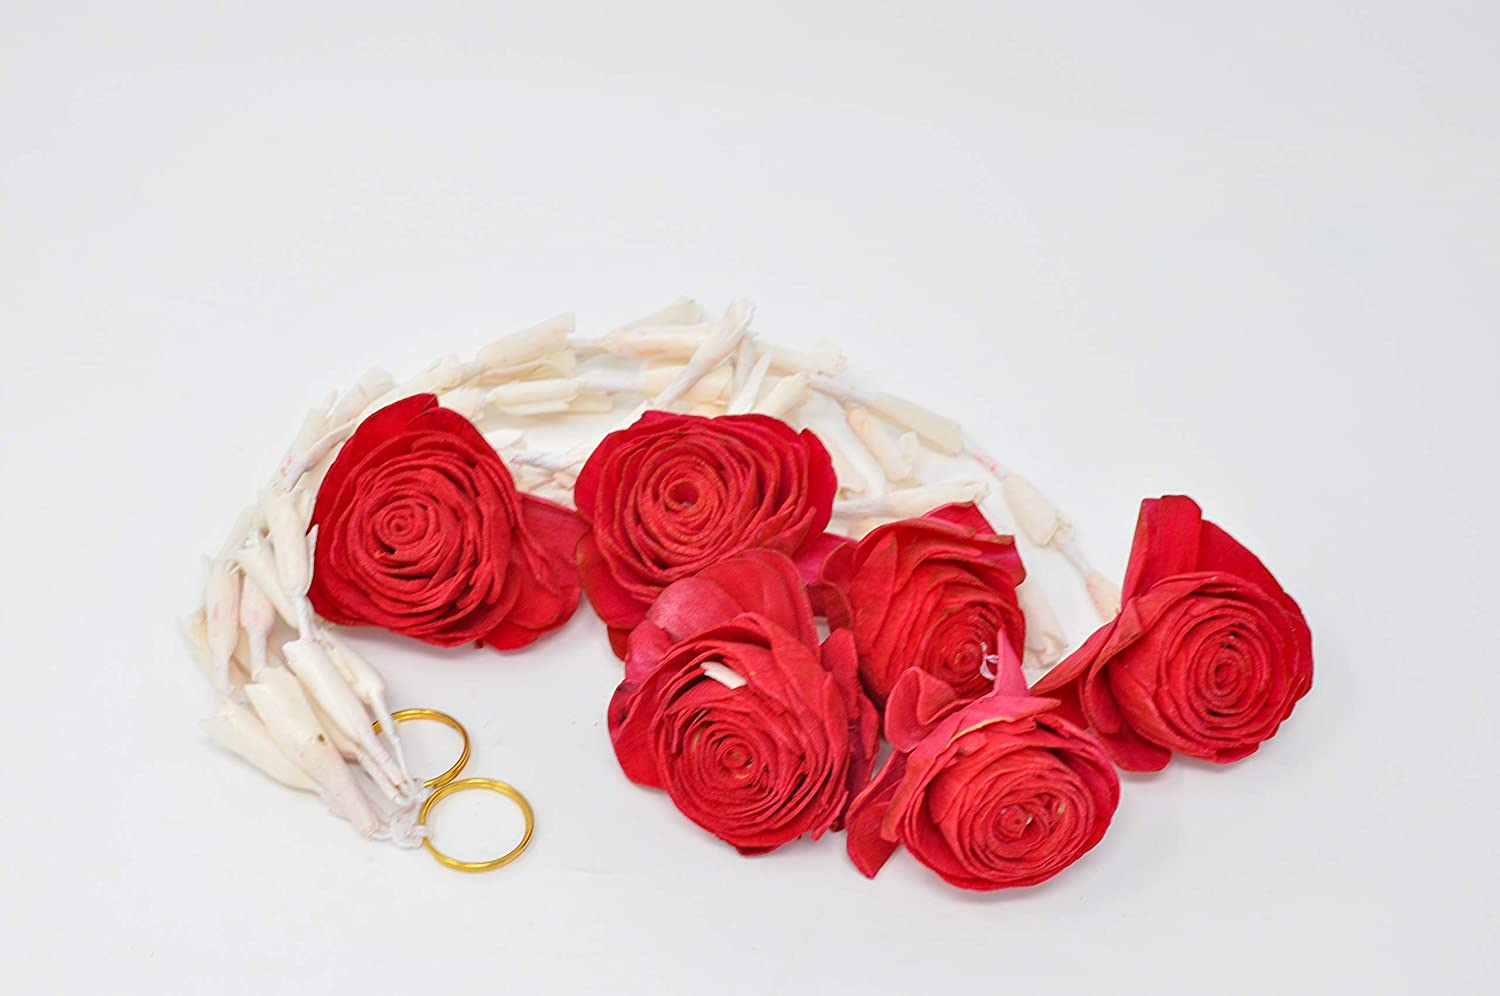 Desi Favors Lilly with Rose Garland for Diwali Decor